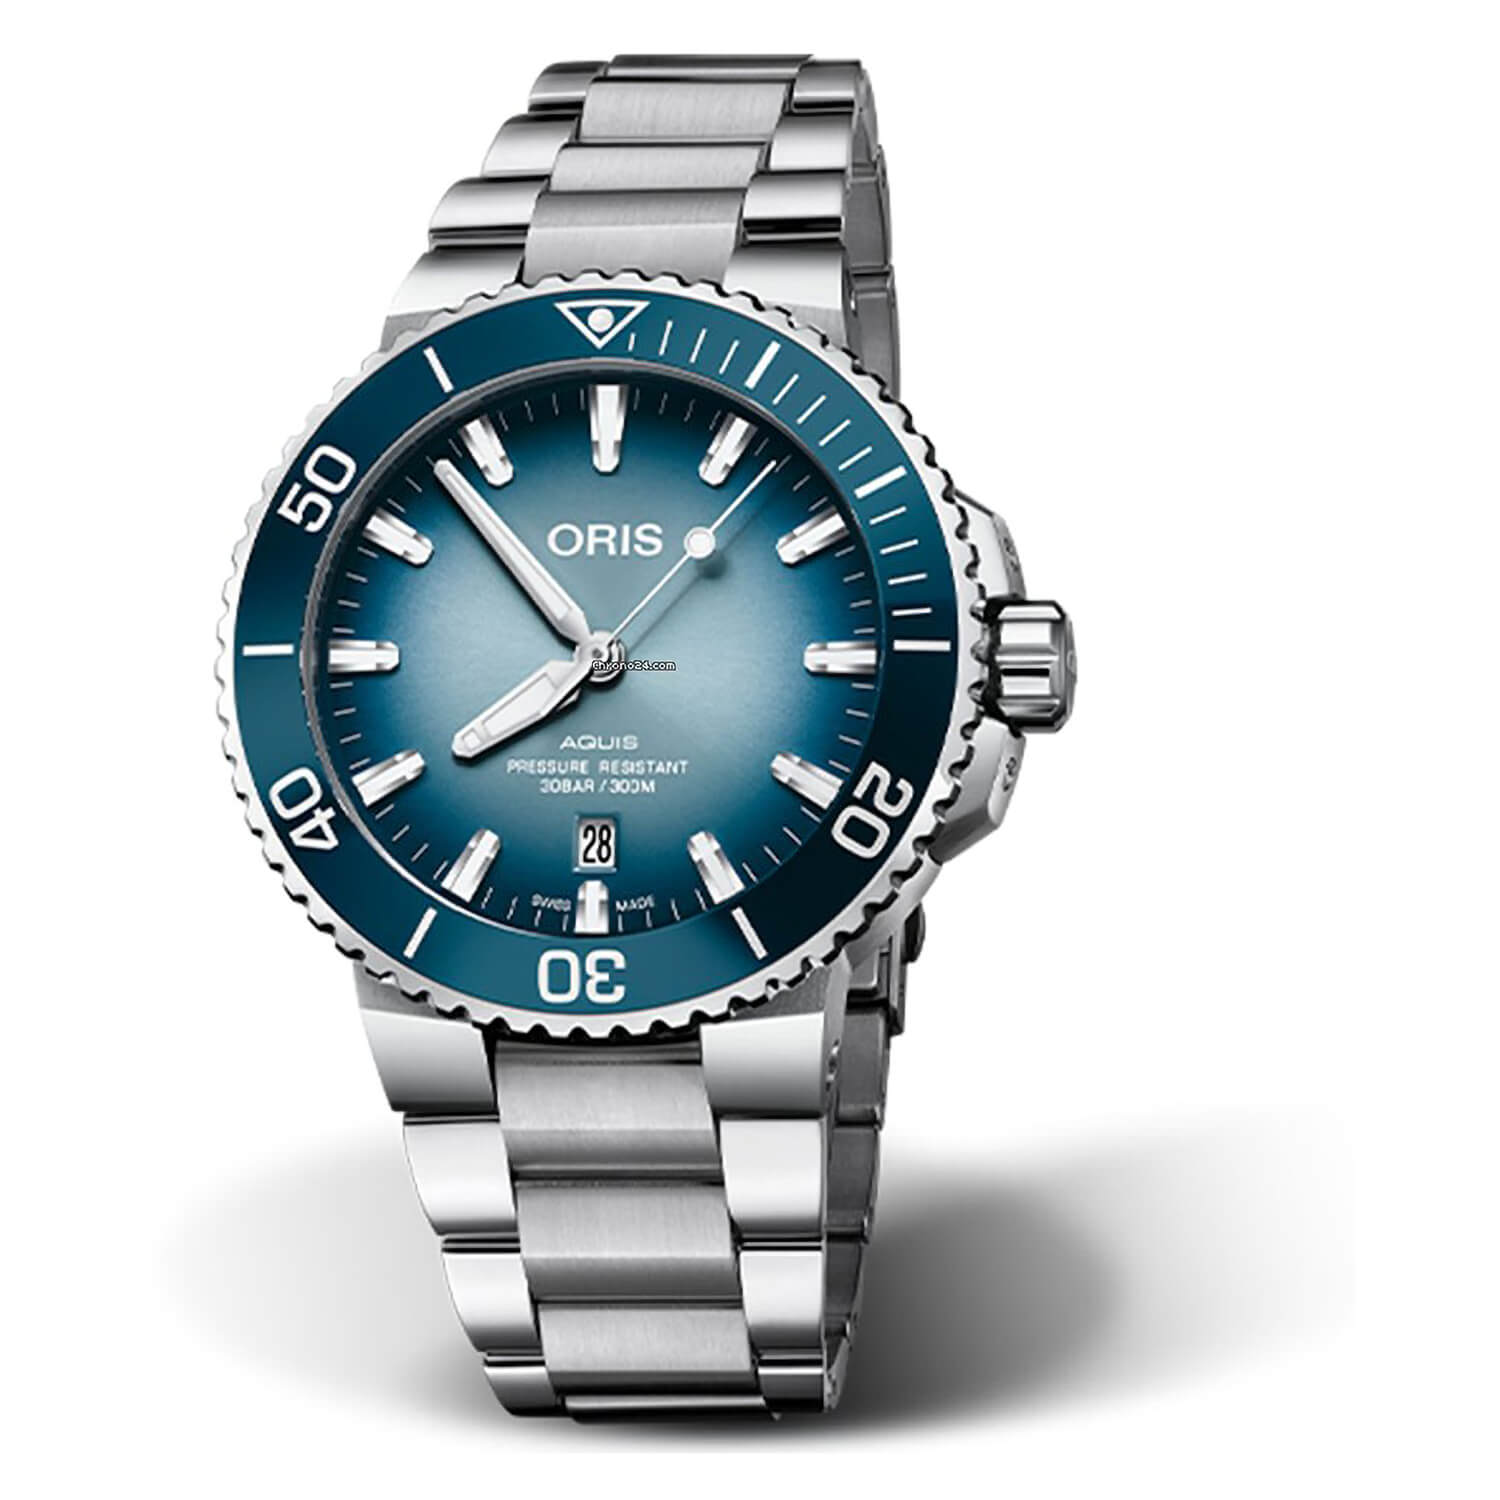 Oris Aquis Limited Edition Lake Baikal 44mm Gradient Blue Dial Watch